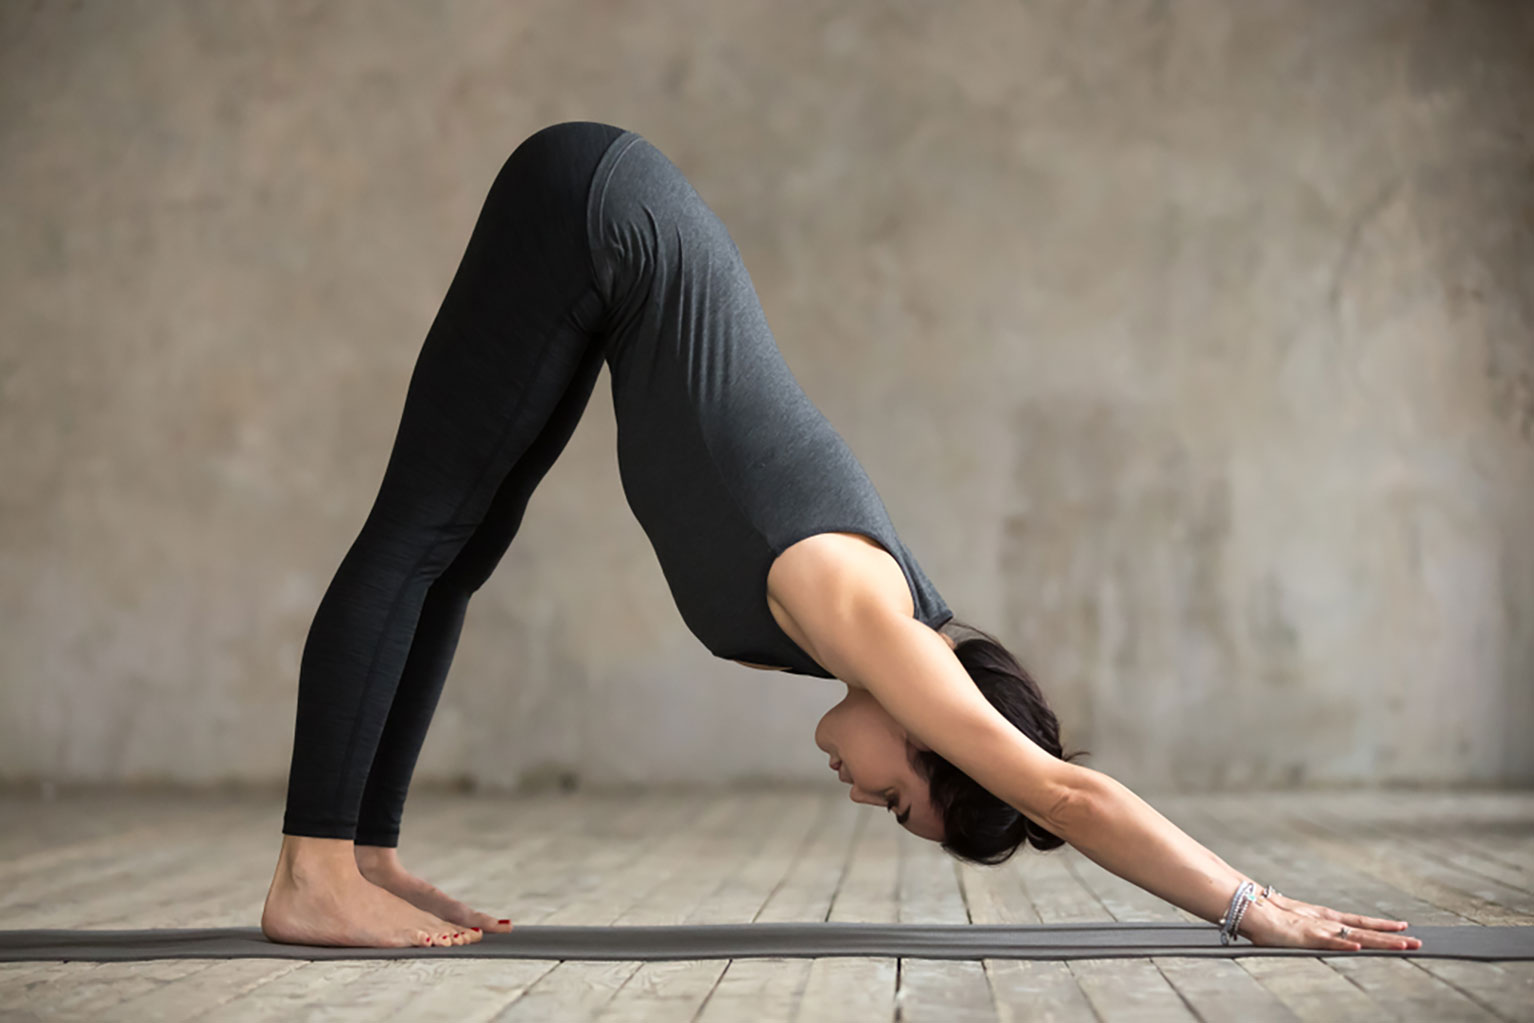 Young woman practicing the down dog yoga pose